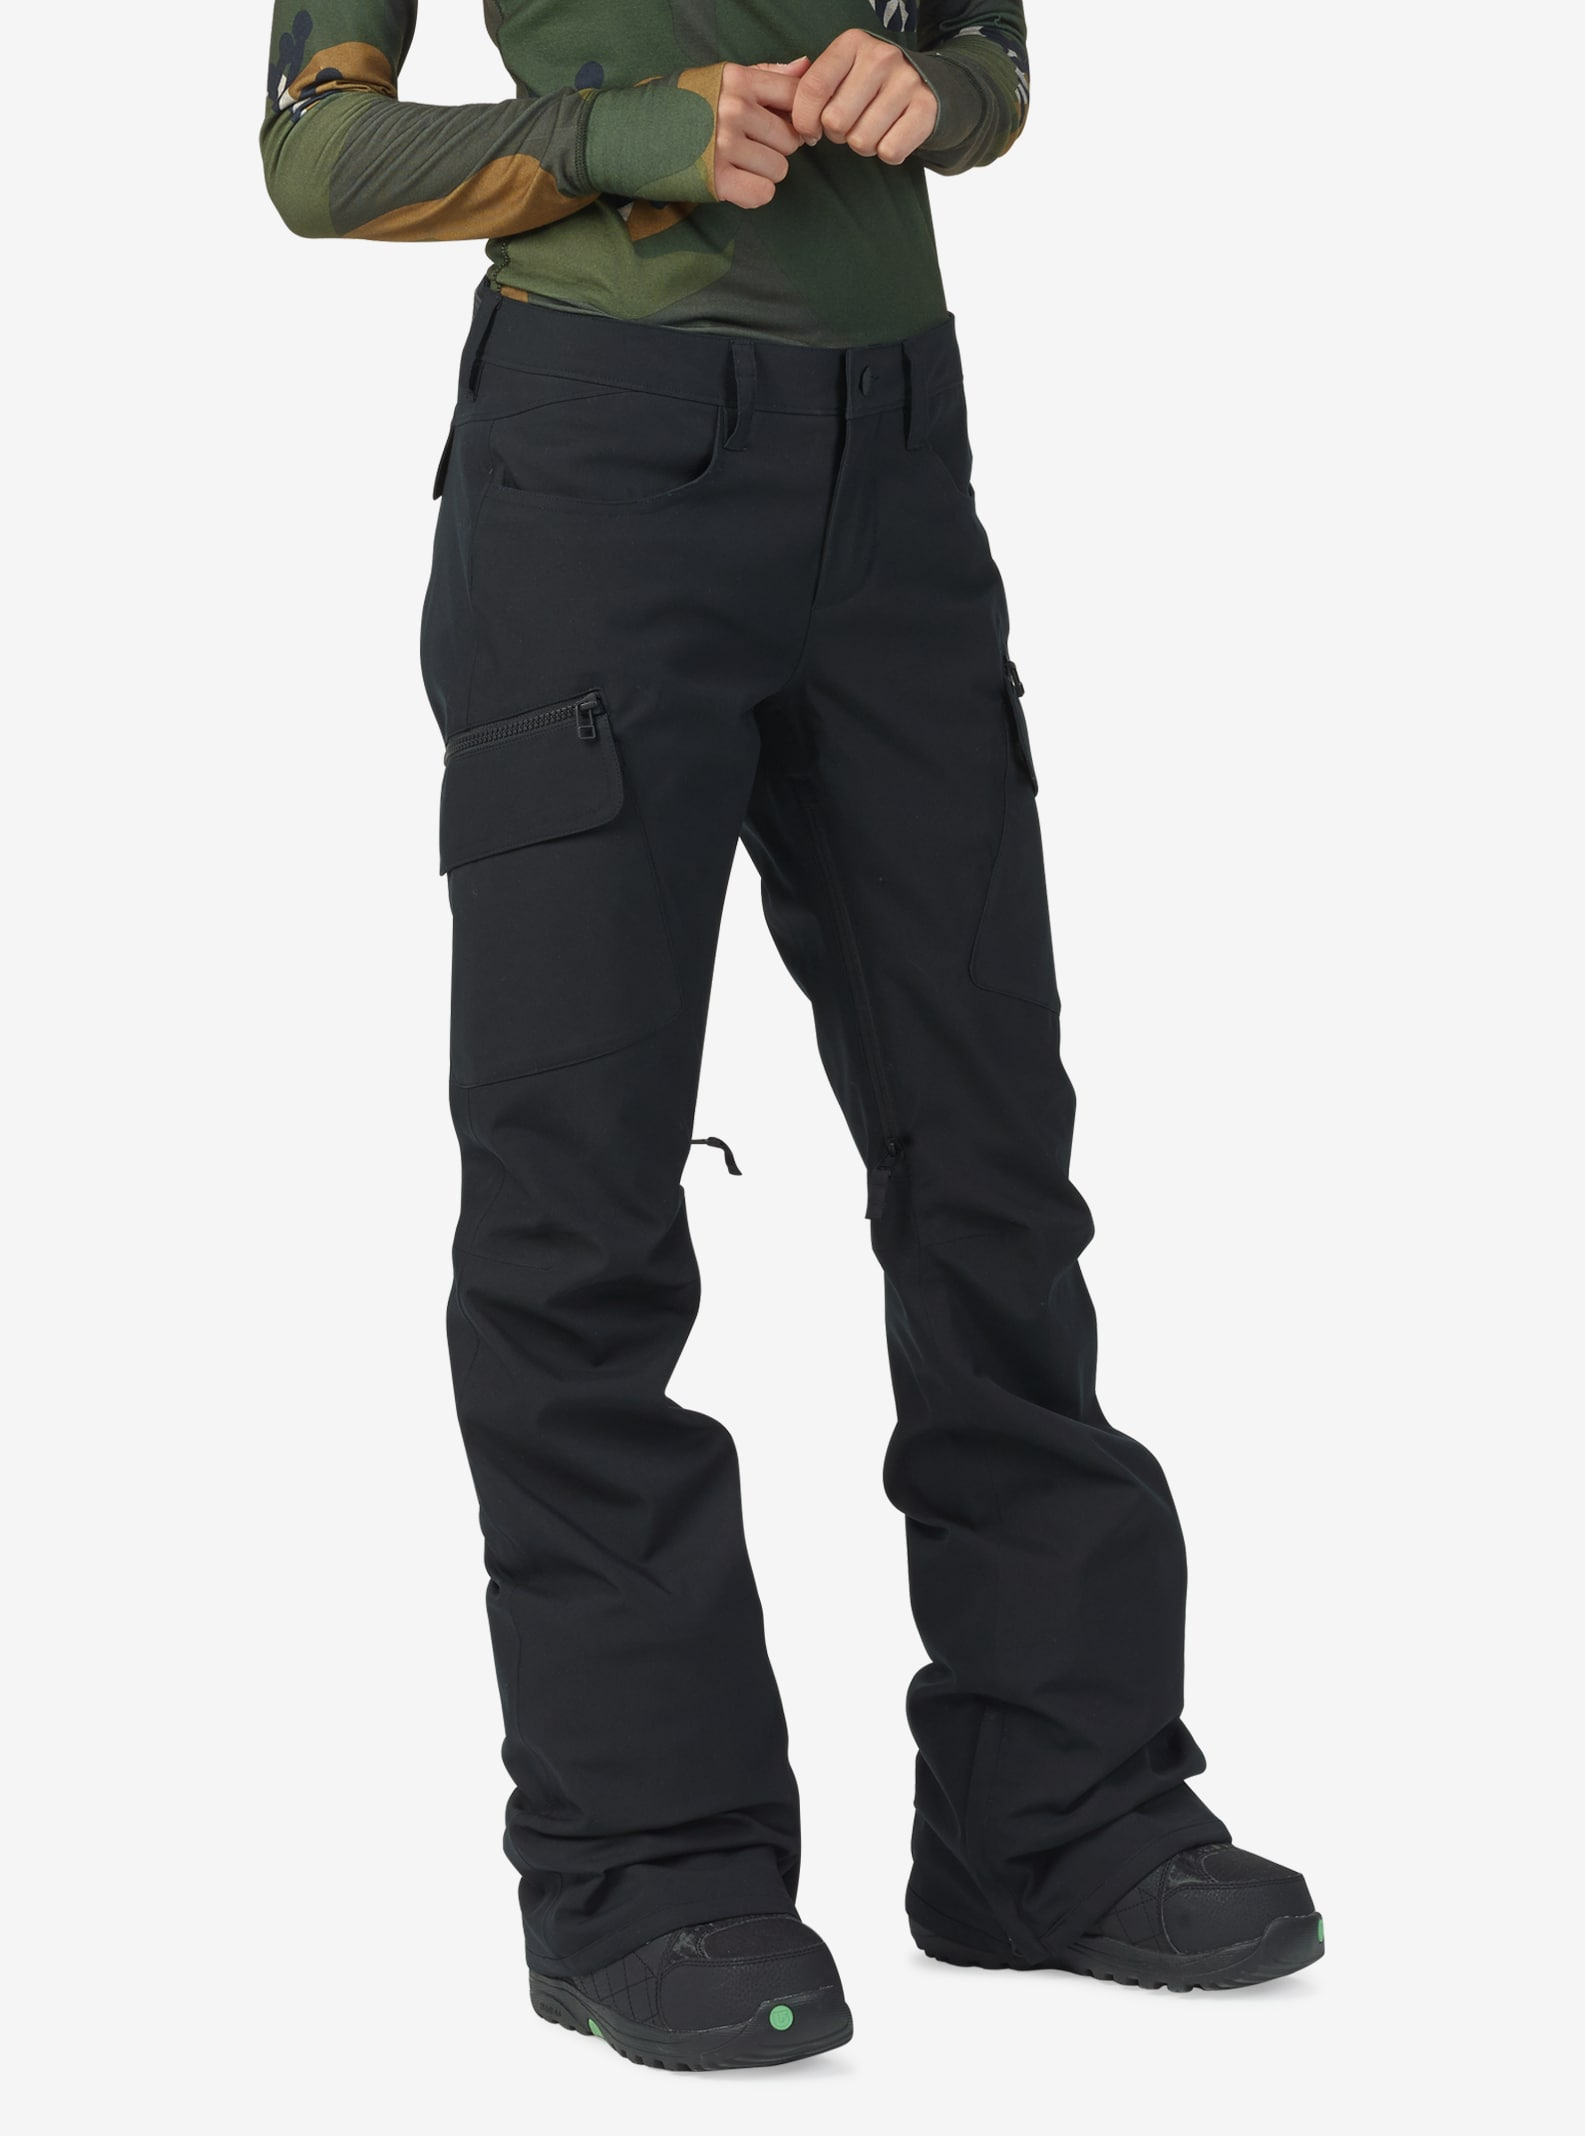 Women's Burton Gloria Pant shown in True Black